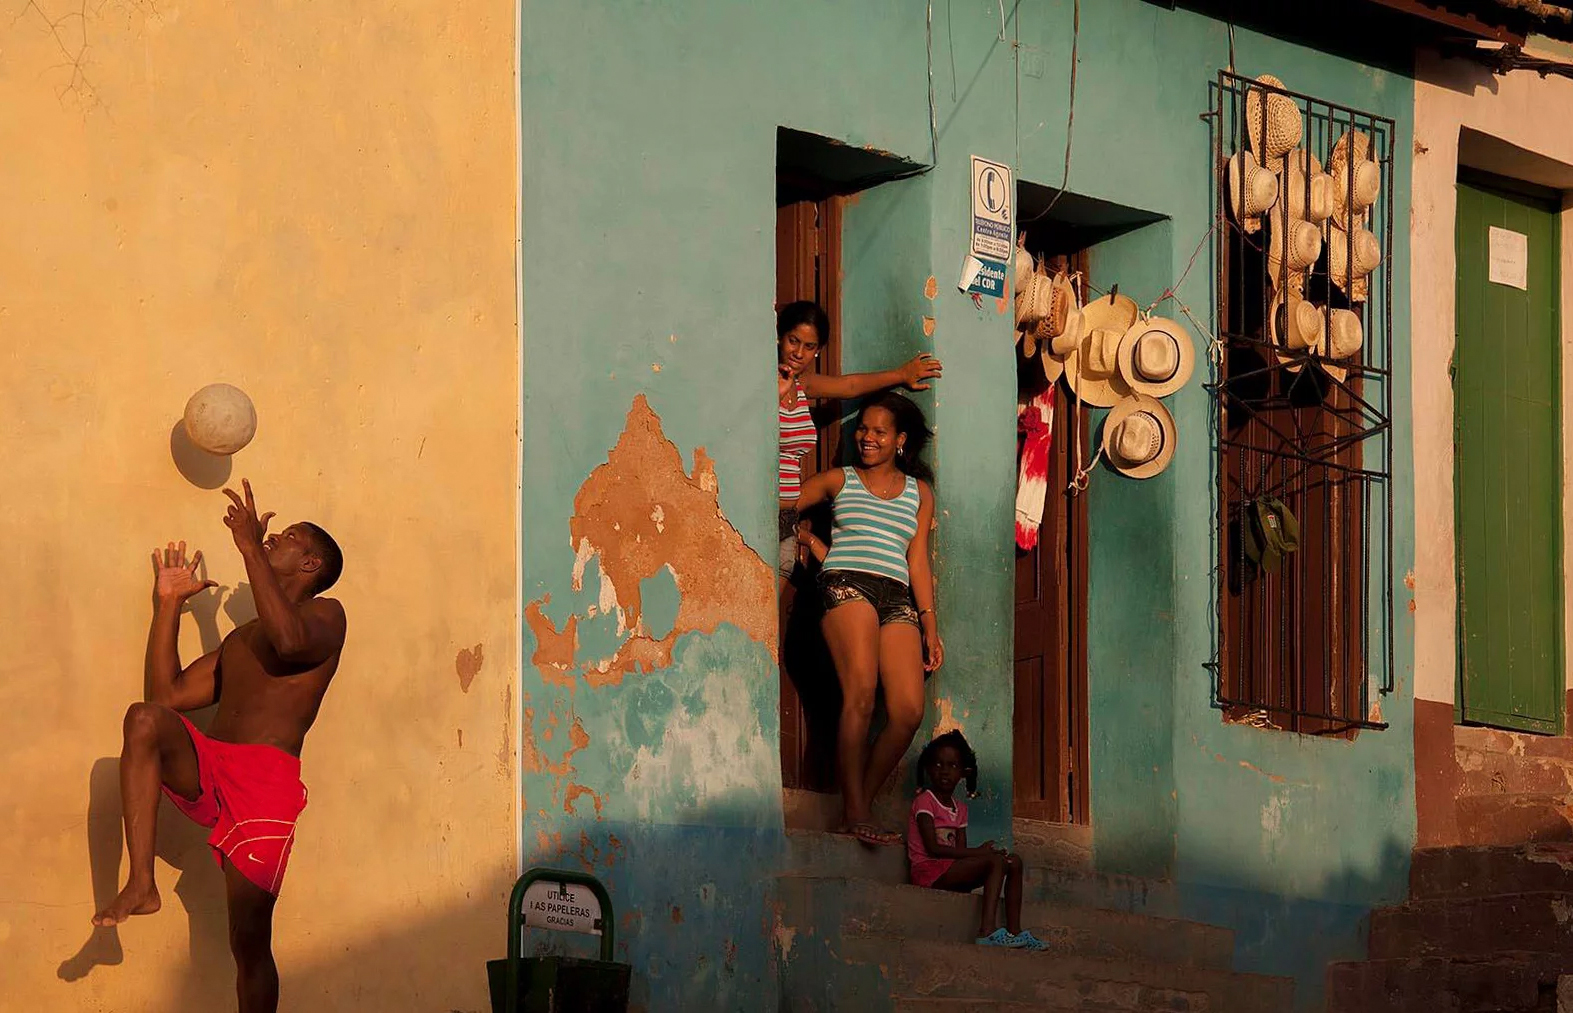 Color photo by Alex Almeida, family, guy playing soccer Cuba.